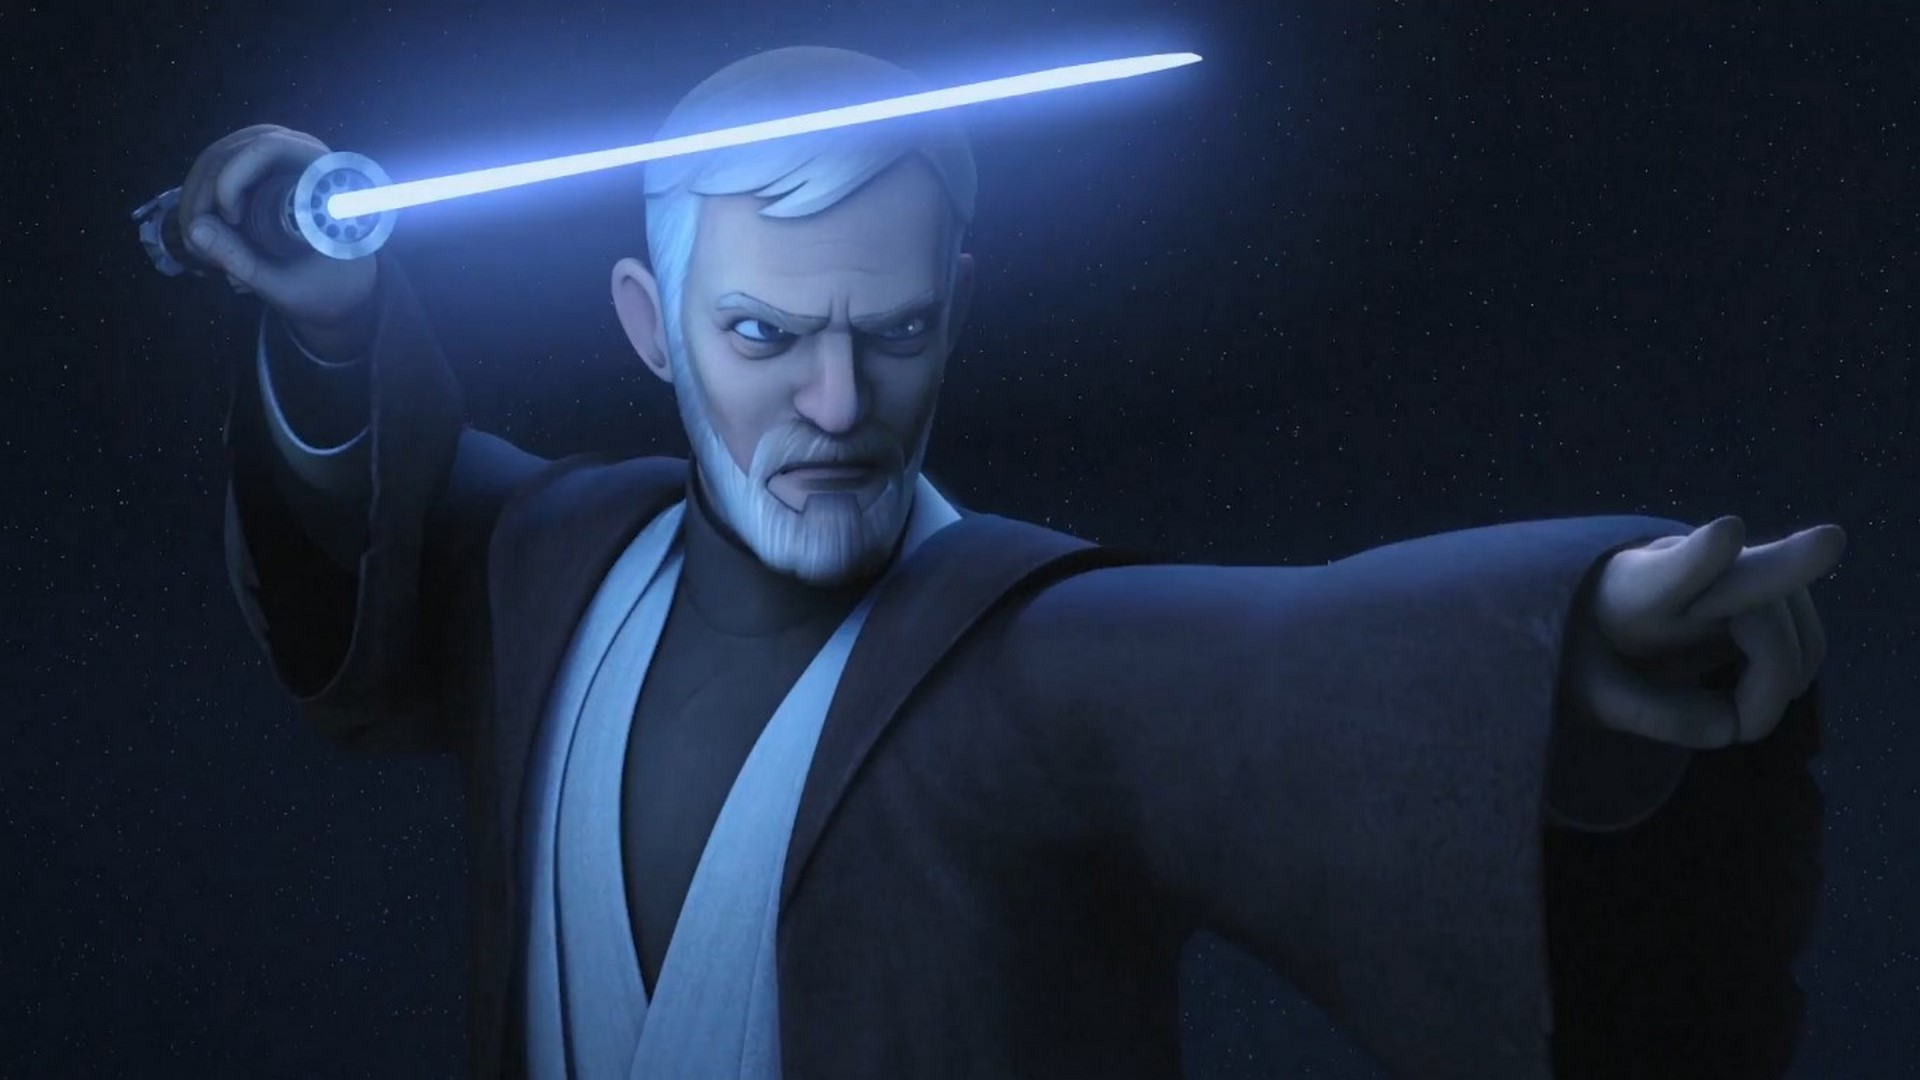 Syfy Star Wars Rebels S3 Blu Ray Reveals New Insight On Obi Wans Dvd Original Film  Season 1 Tatooine Exile